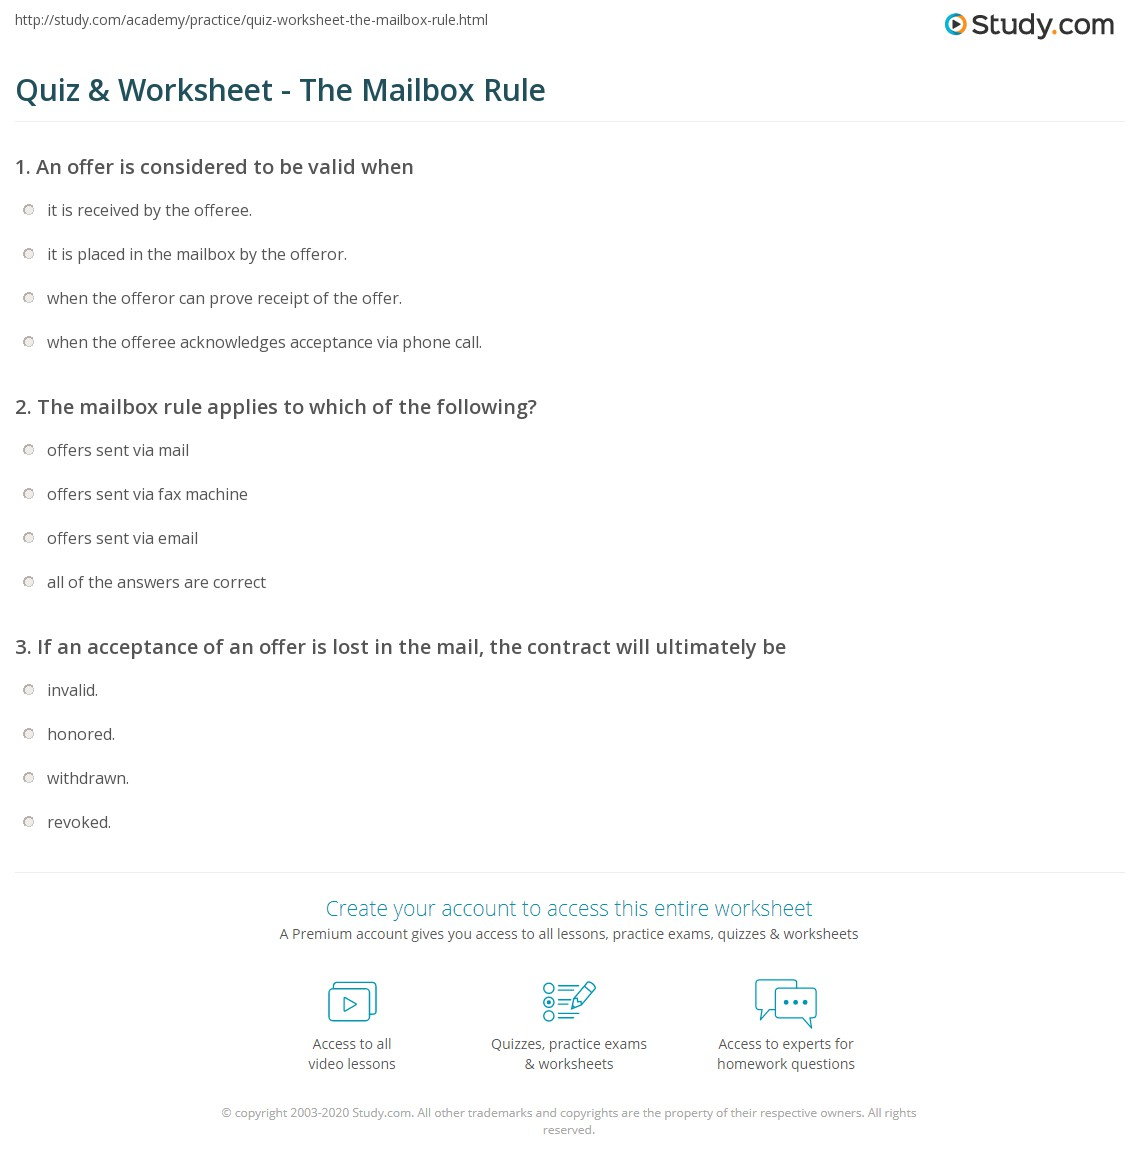 Worksheets The Mailbox Worksheets worksheet the mailbox worksheets mytourvn study site quiz rule com print and contract law worksheet